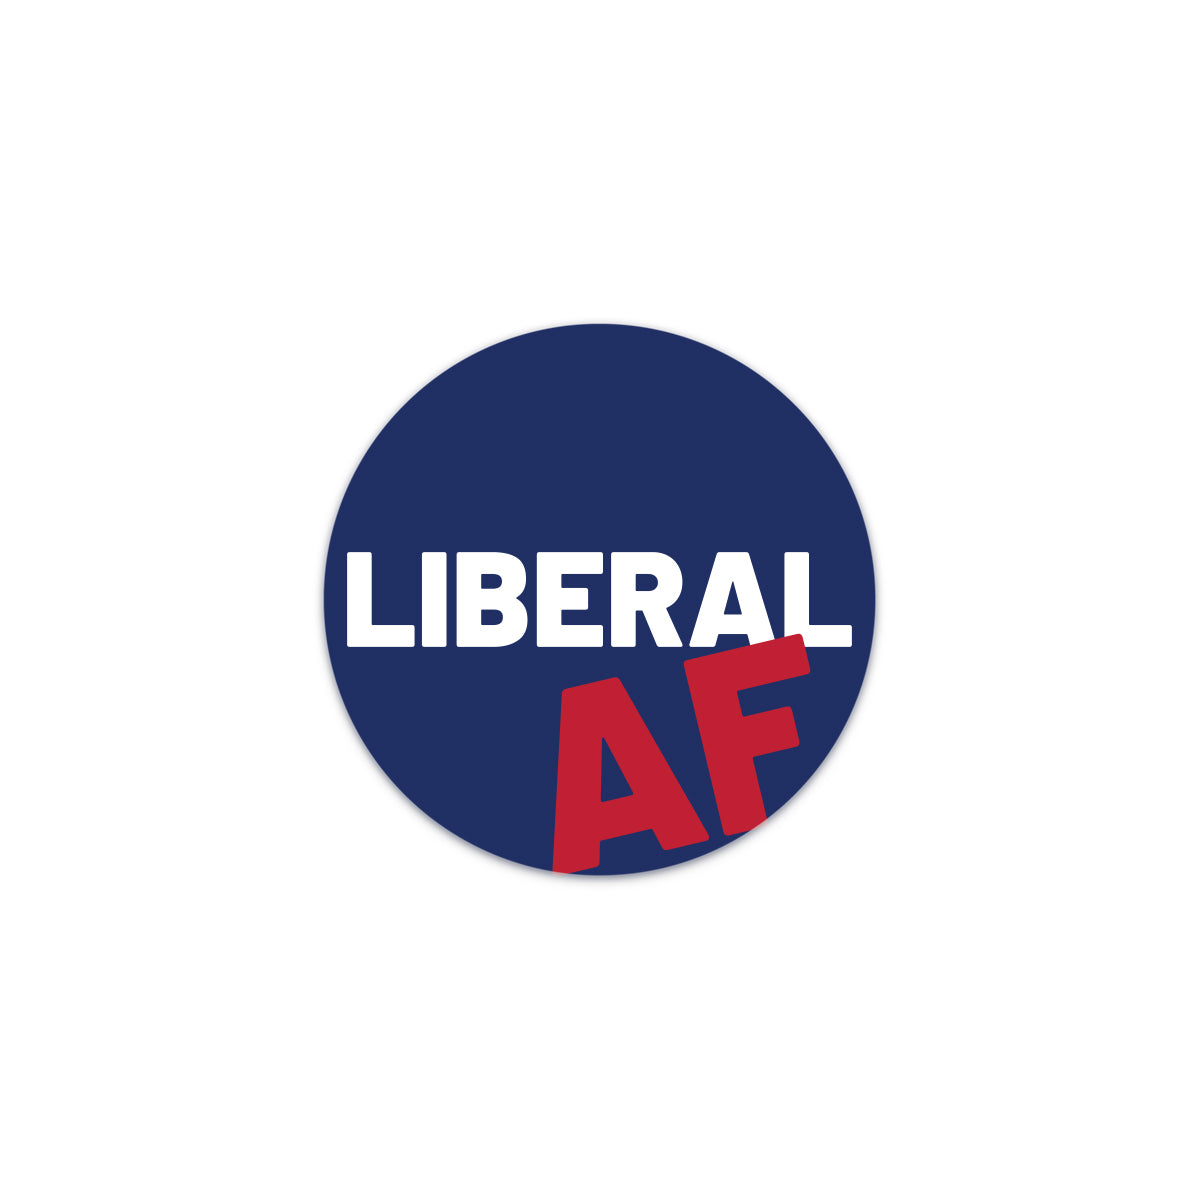 liberal af decal sticker